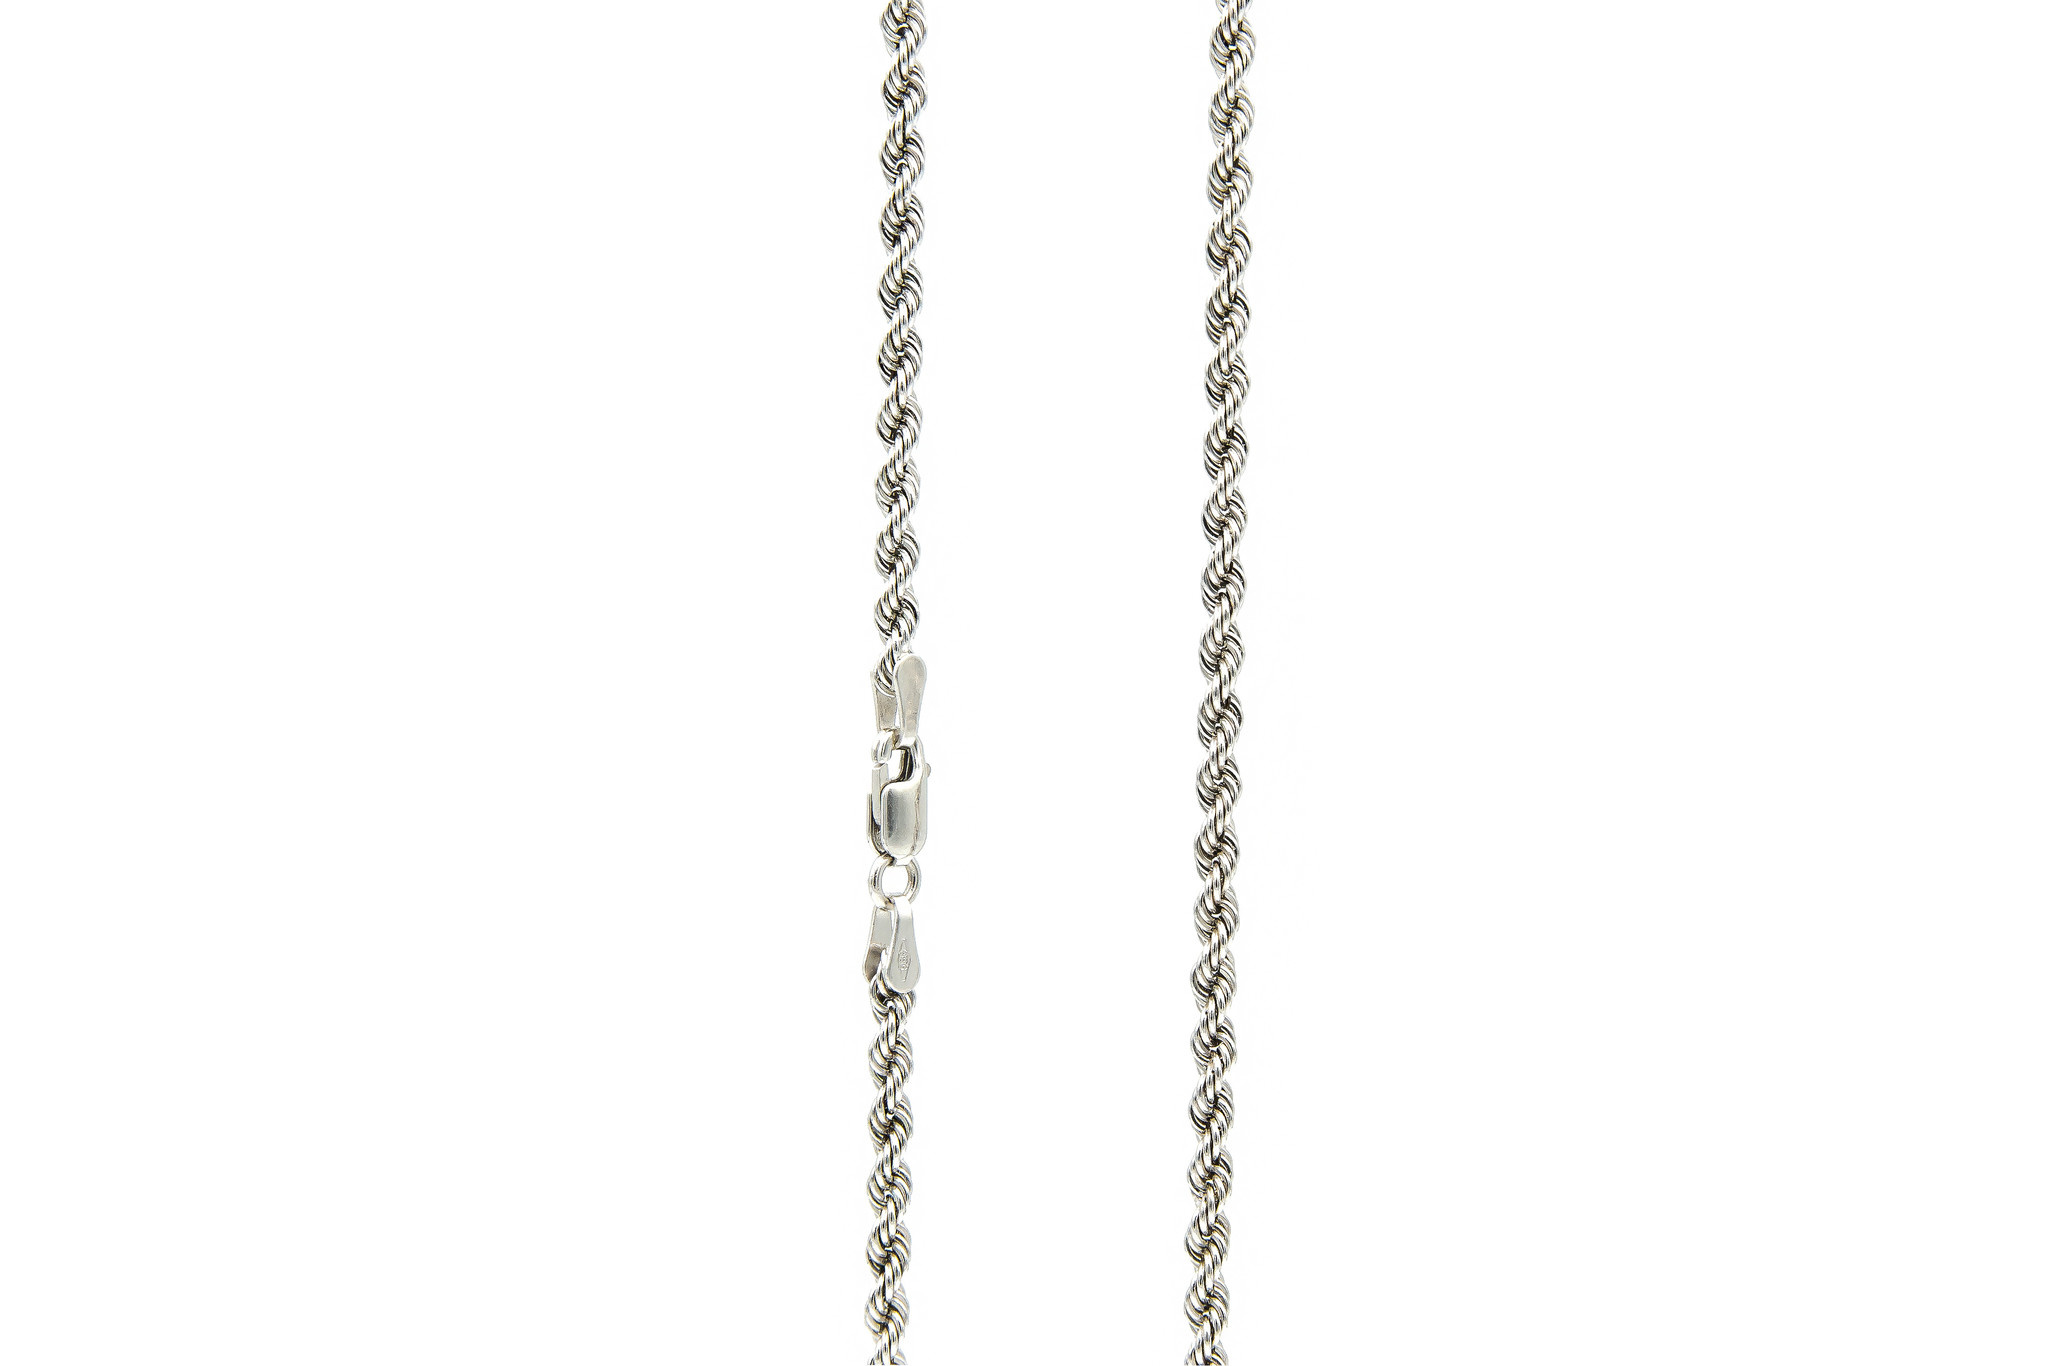 Rope chain witgoud 14kt 3.5mm-4